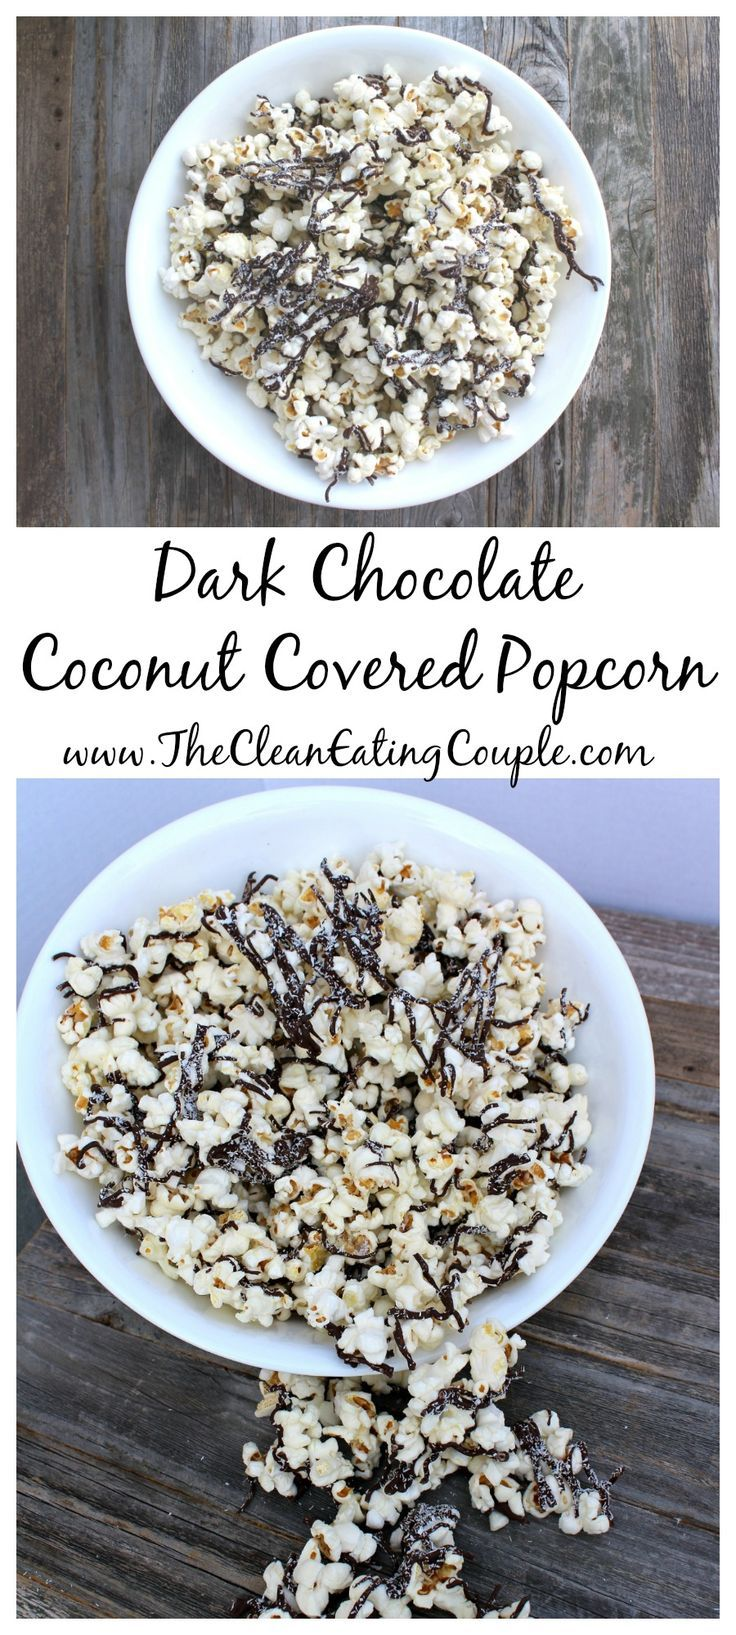 Dark Chocolate Coconut Covered Popcorn is the perfect dessert or snack for your sweet tooth. This recipe is vegan, gluten free and SO delicious!